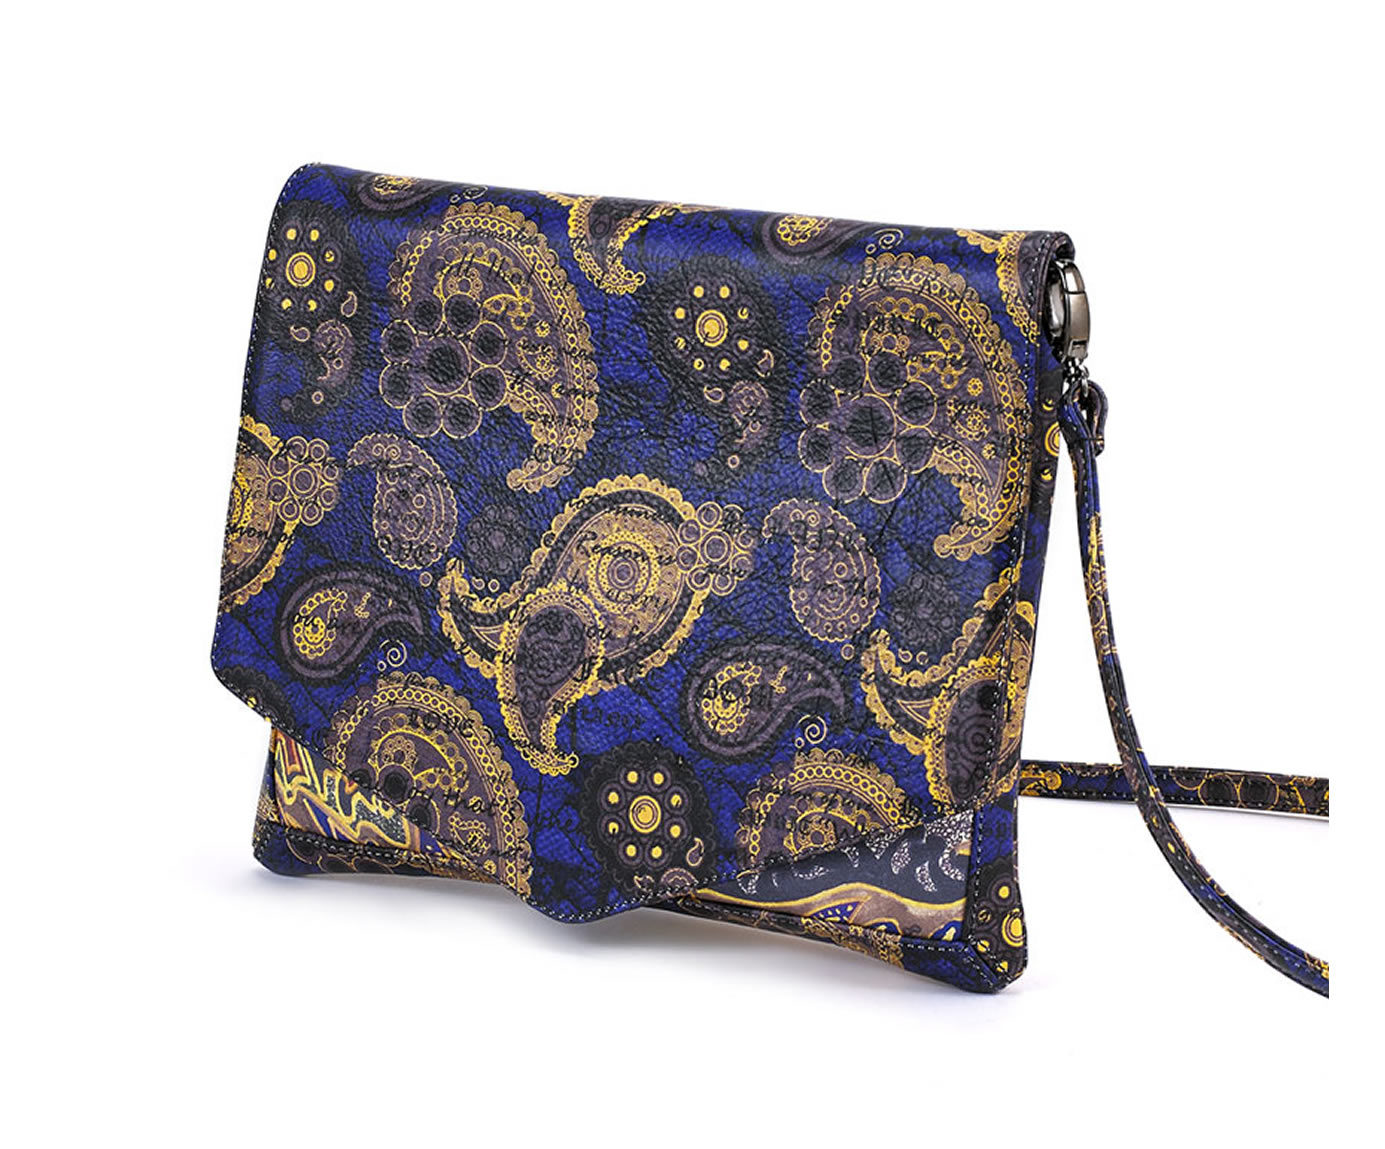 CROSS-BODY BLUE GOLD PAISLEY LOTUS 1